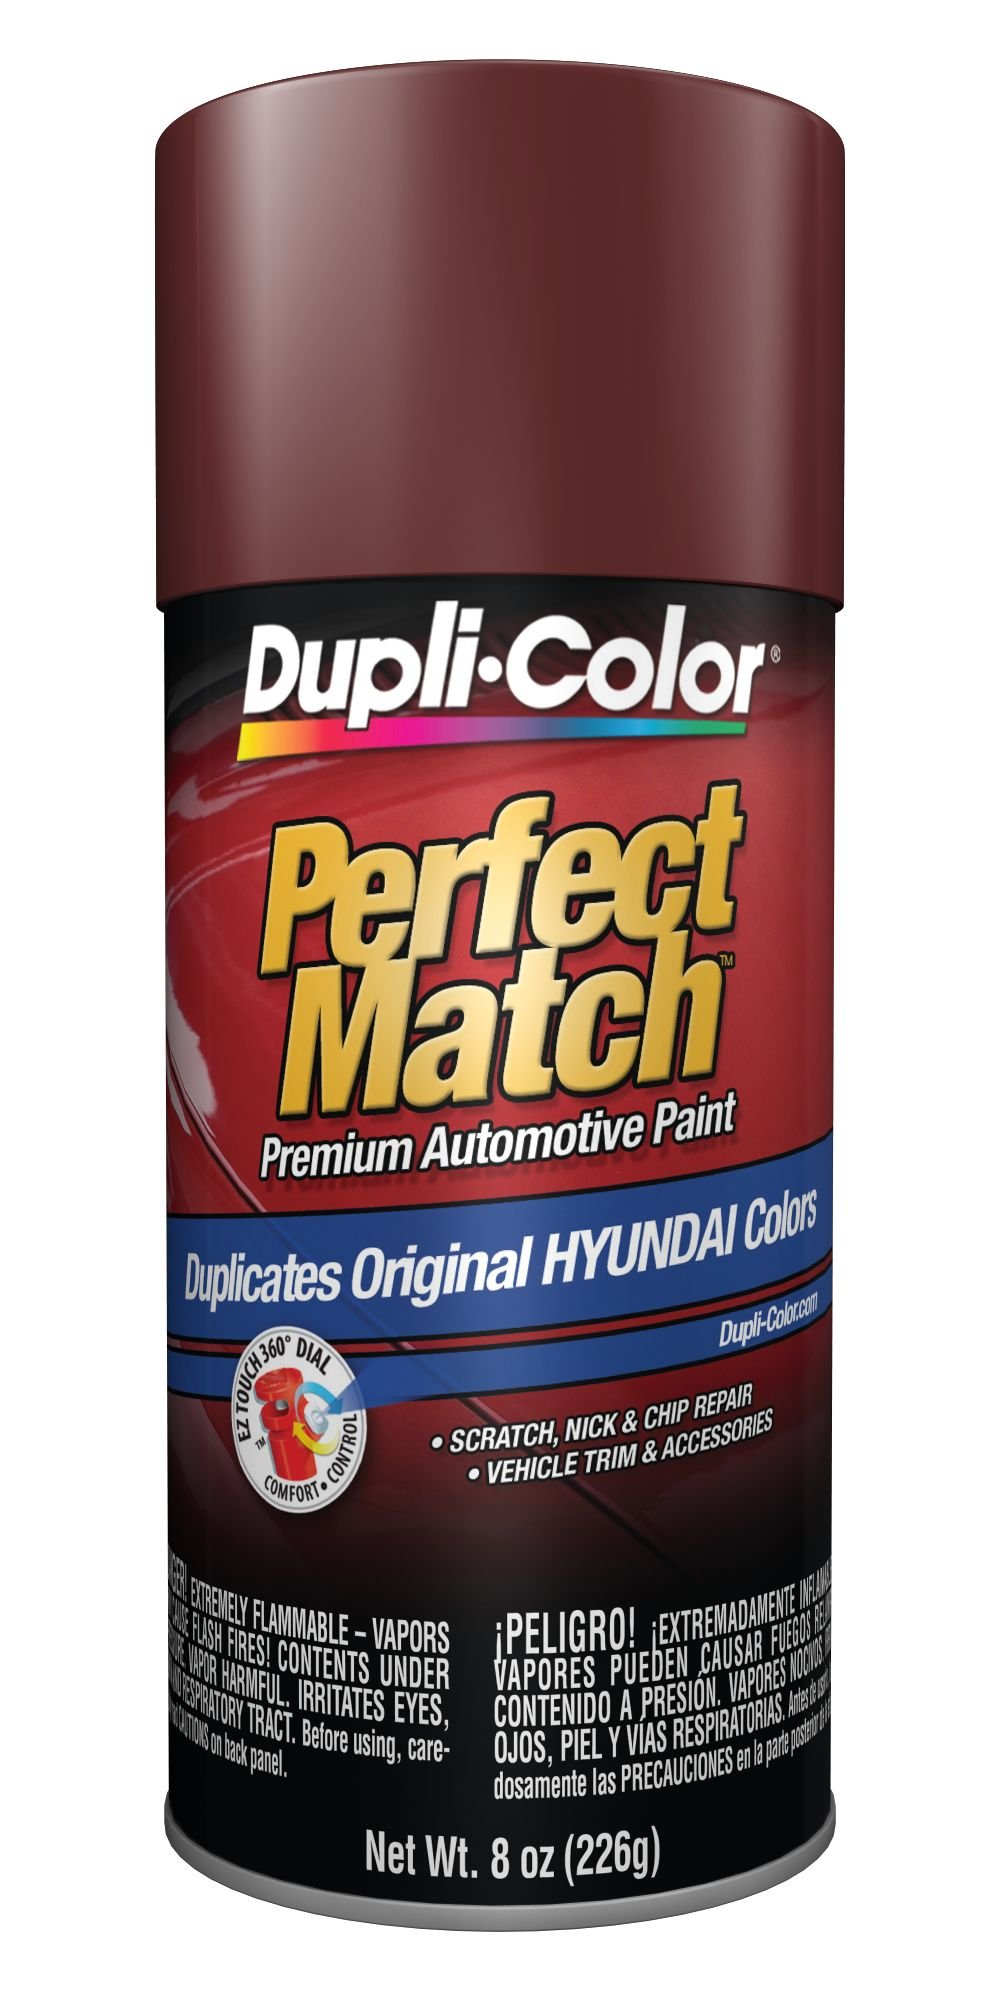 VHT BHY1801 Dark Cherry Red Touch-Up Paints, 8. Fluid_Ounces